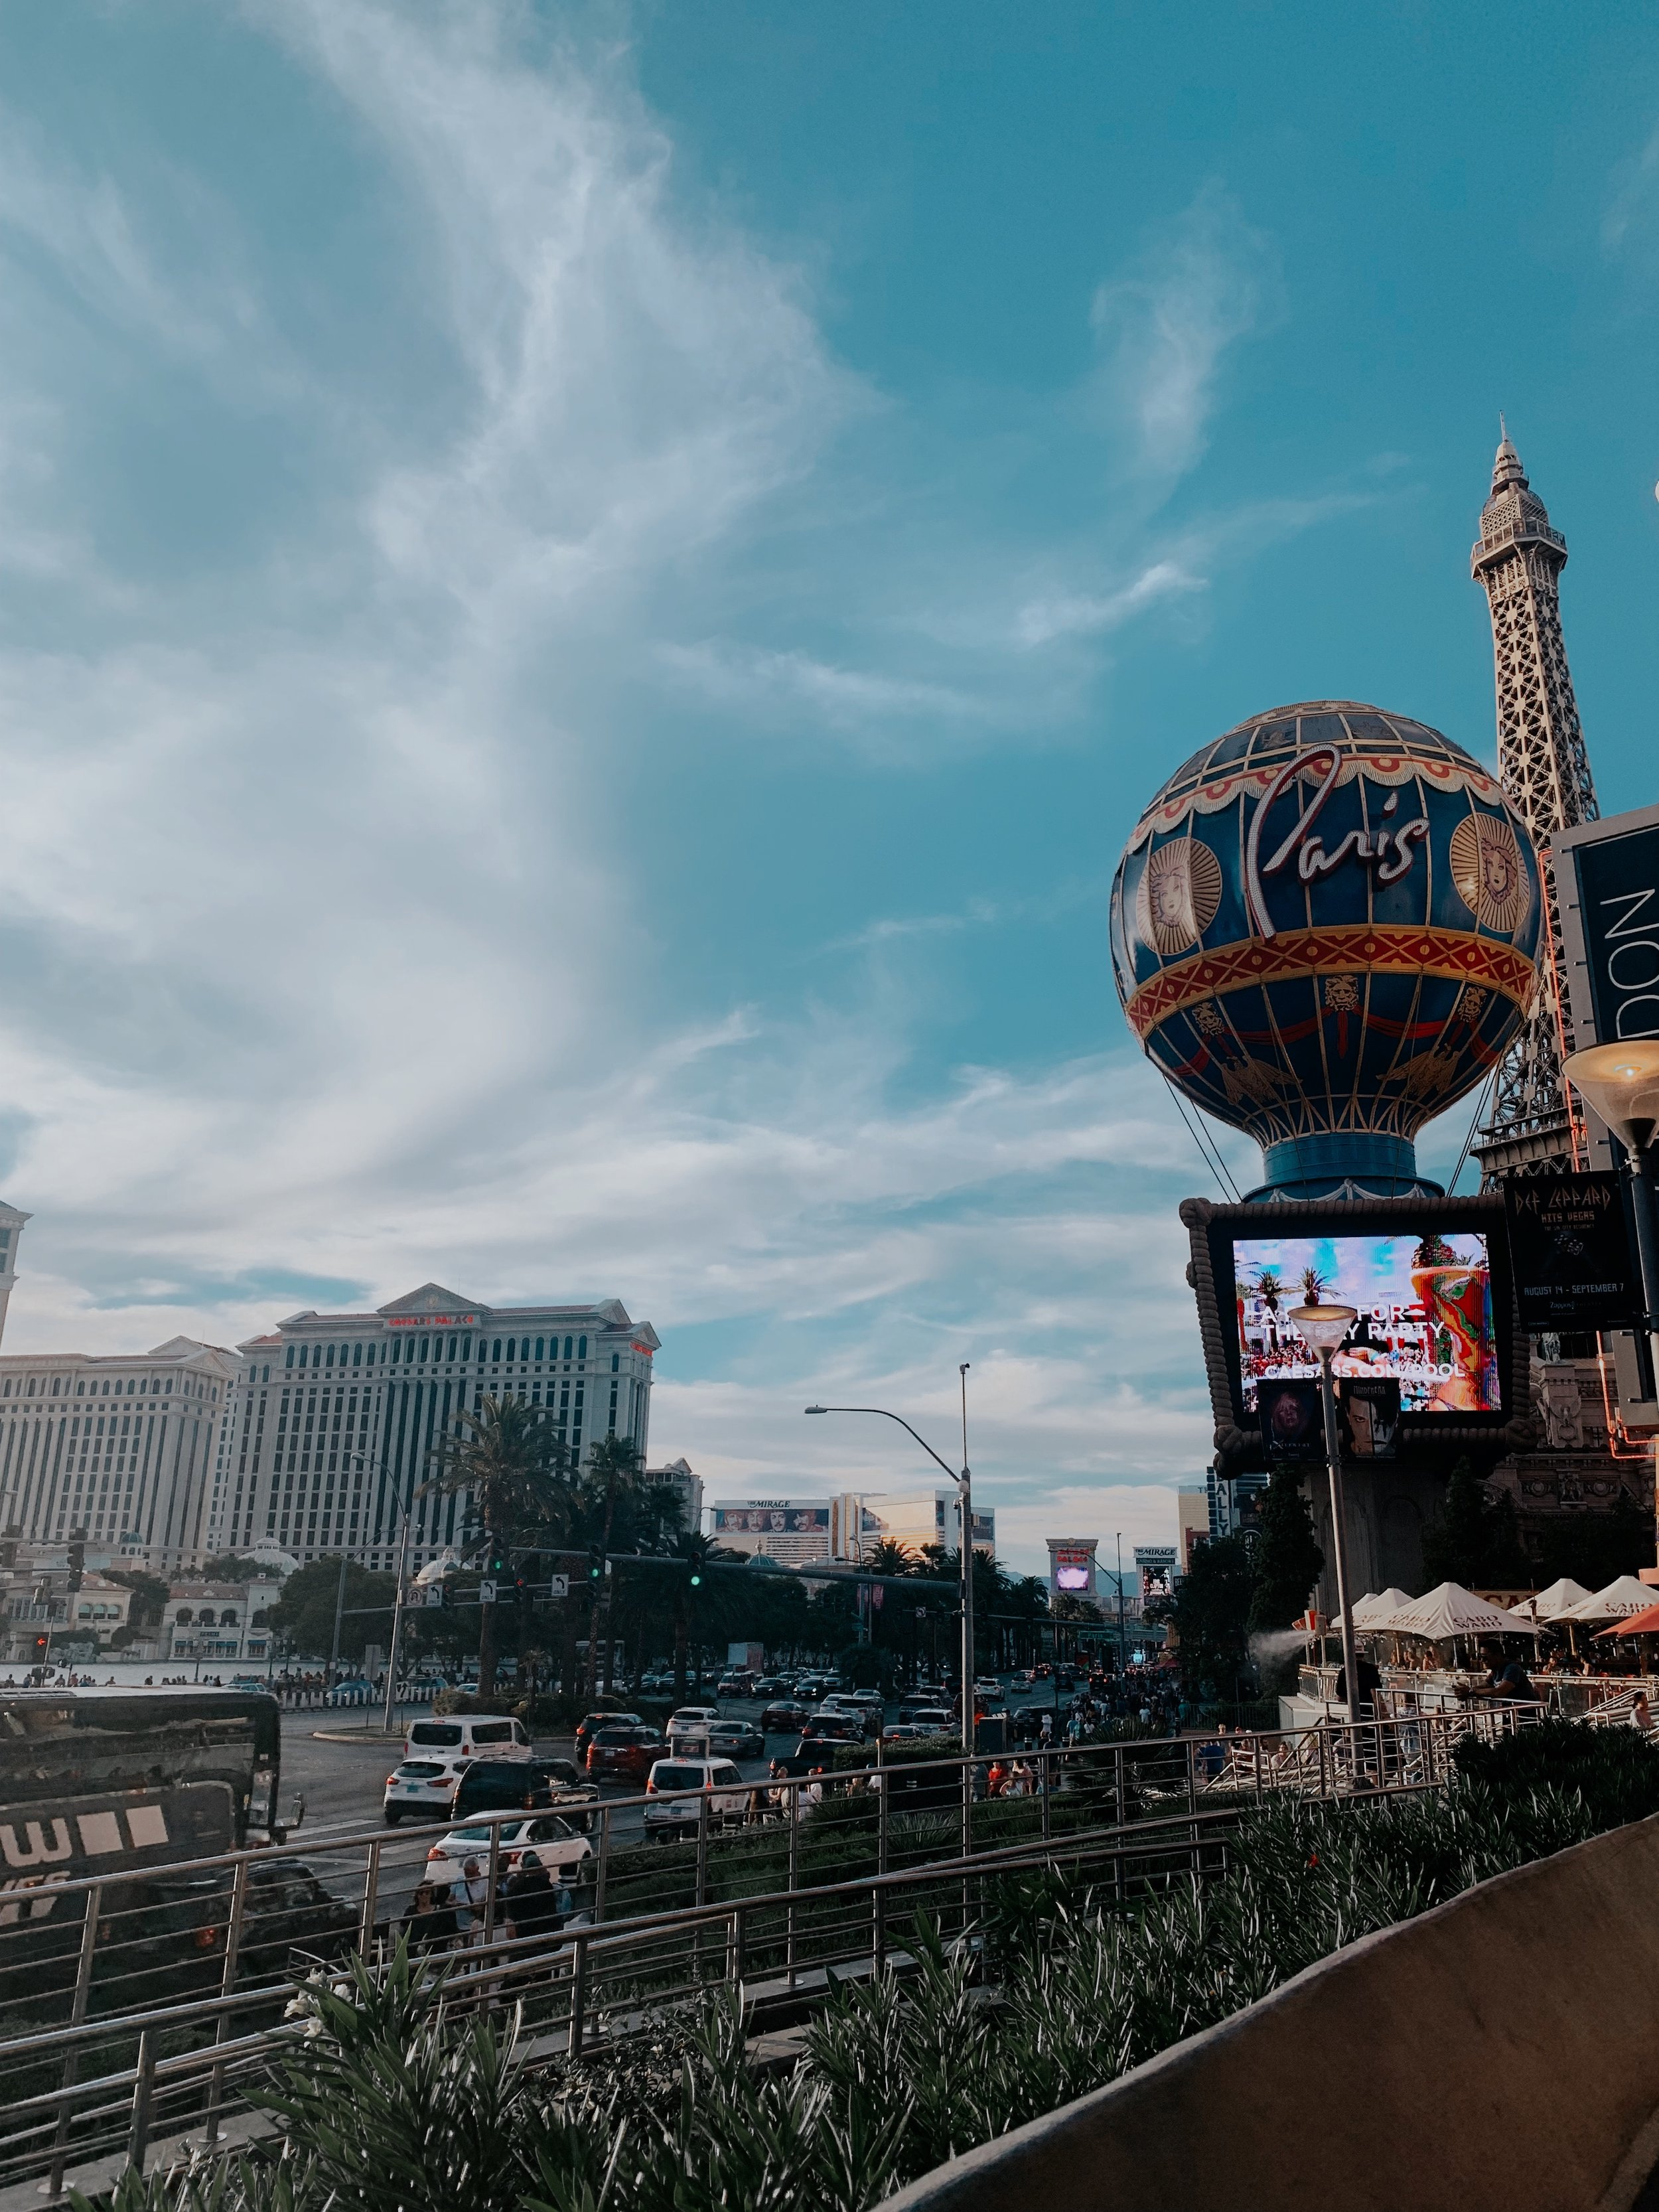 Walking along the strip and seeing everything lit up at night was such a treat! It seriously made me consider having my Bachelorette Party there!